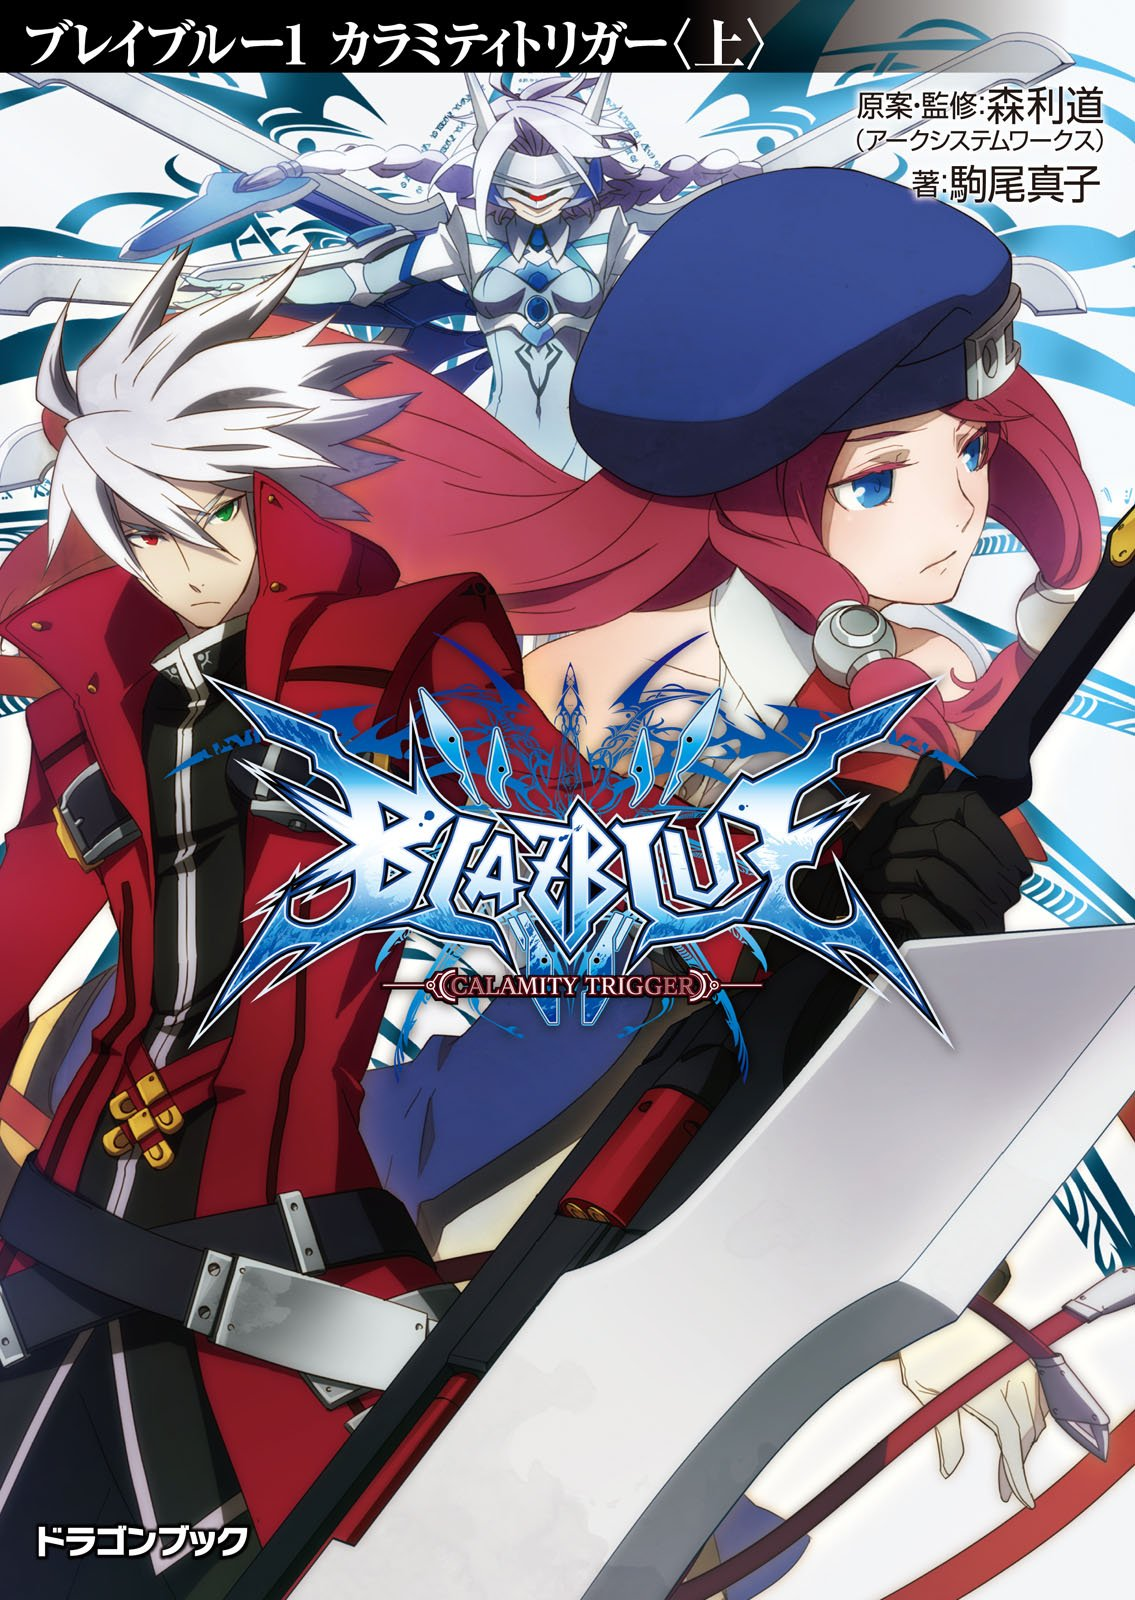 BlazBlue 1: Calamity Trigger - Part 1 (January 2013)